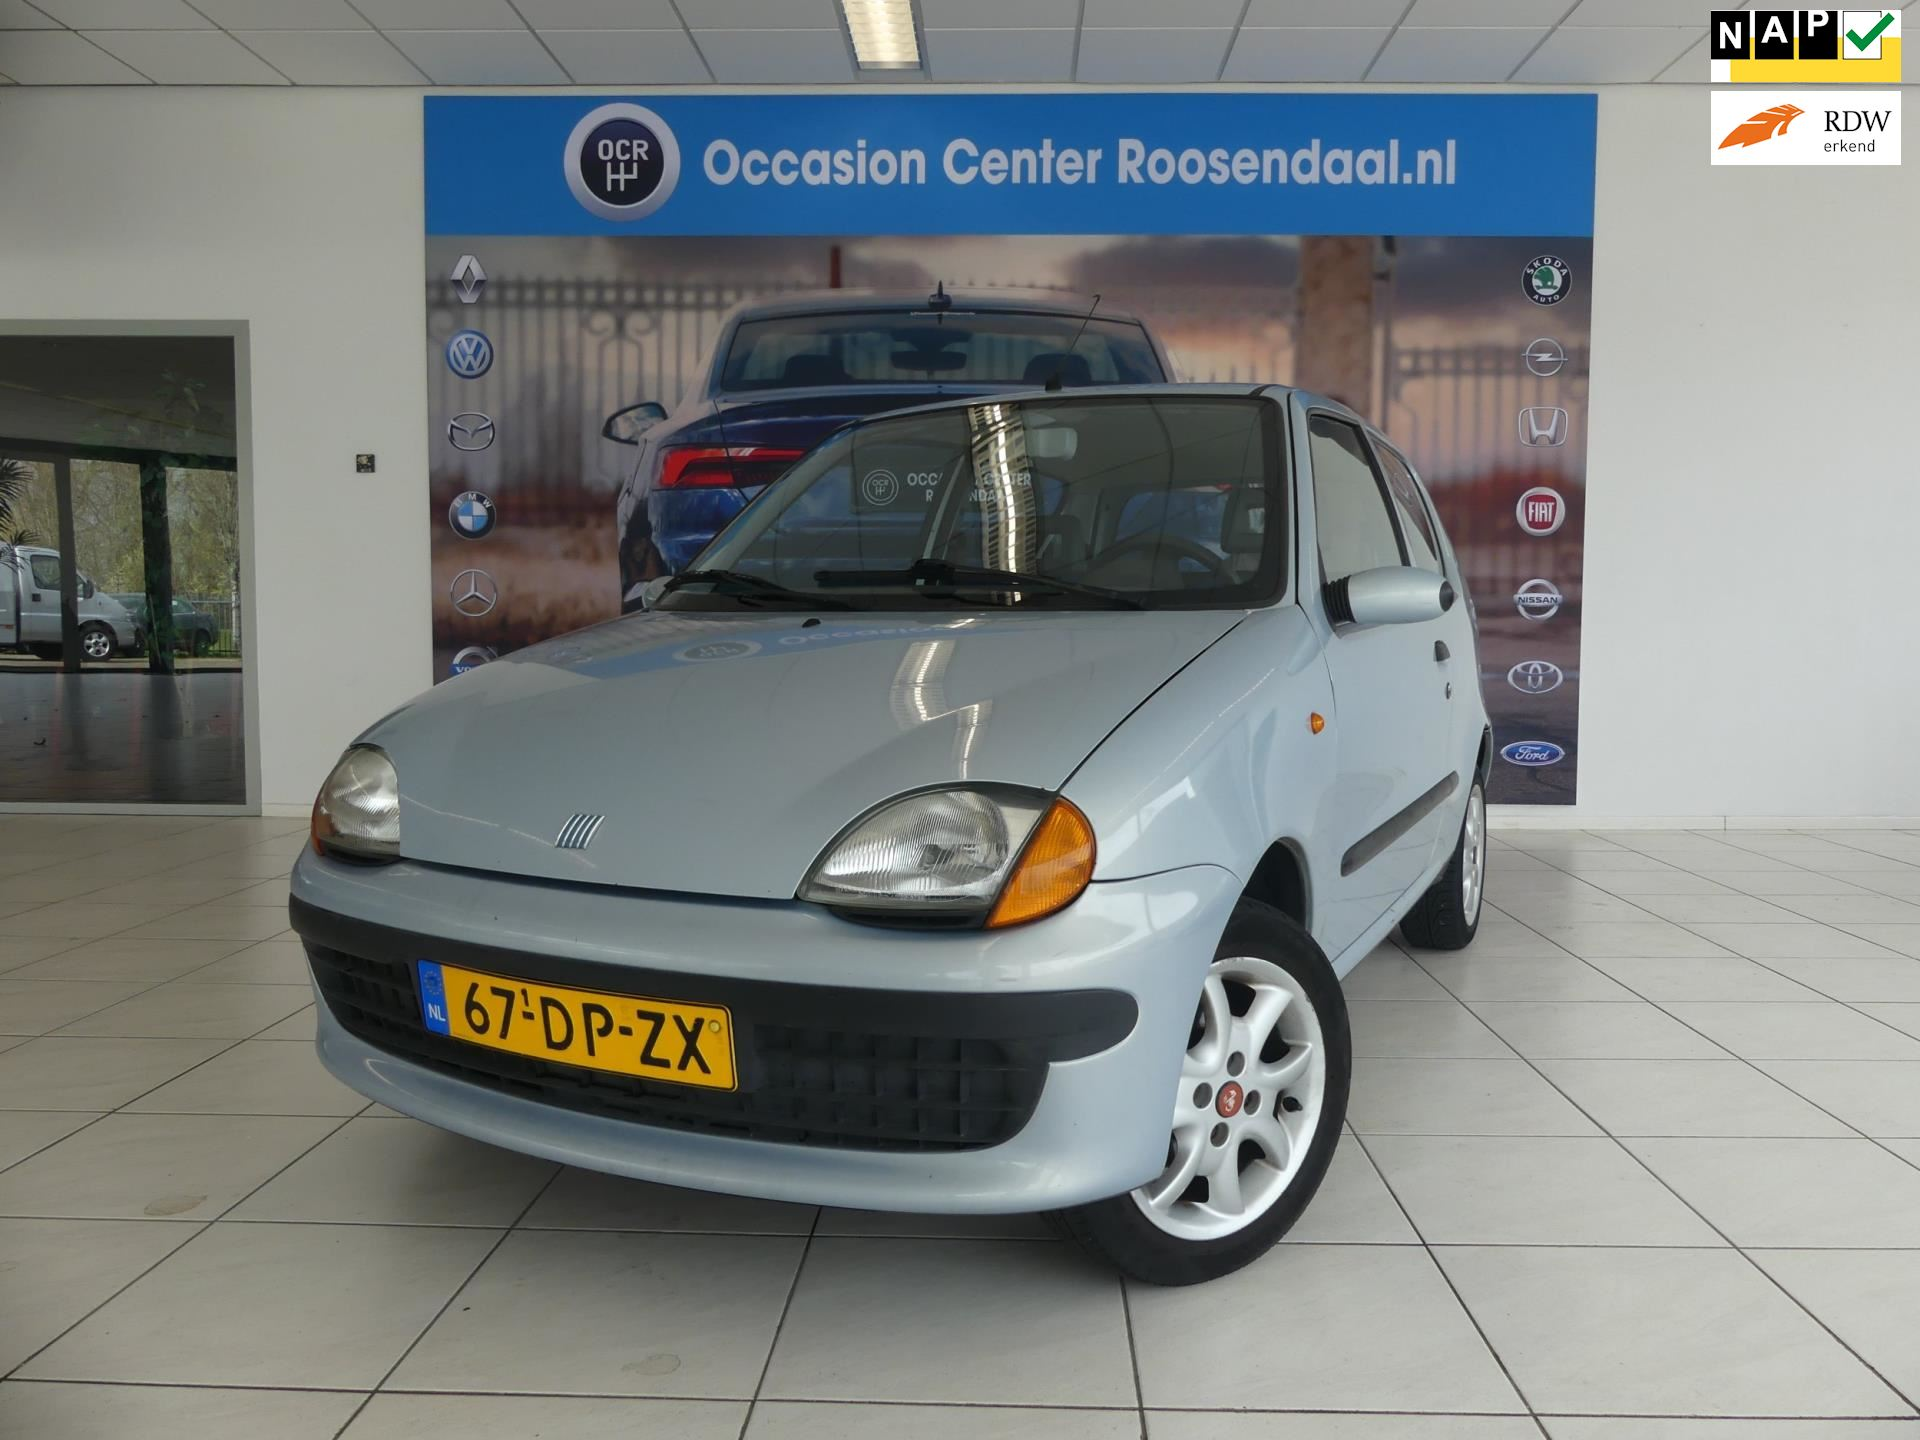 Fiat Seicento occasion - Occasion Center Roosendaal